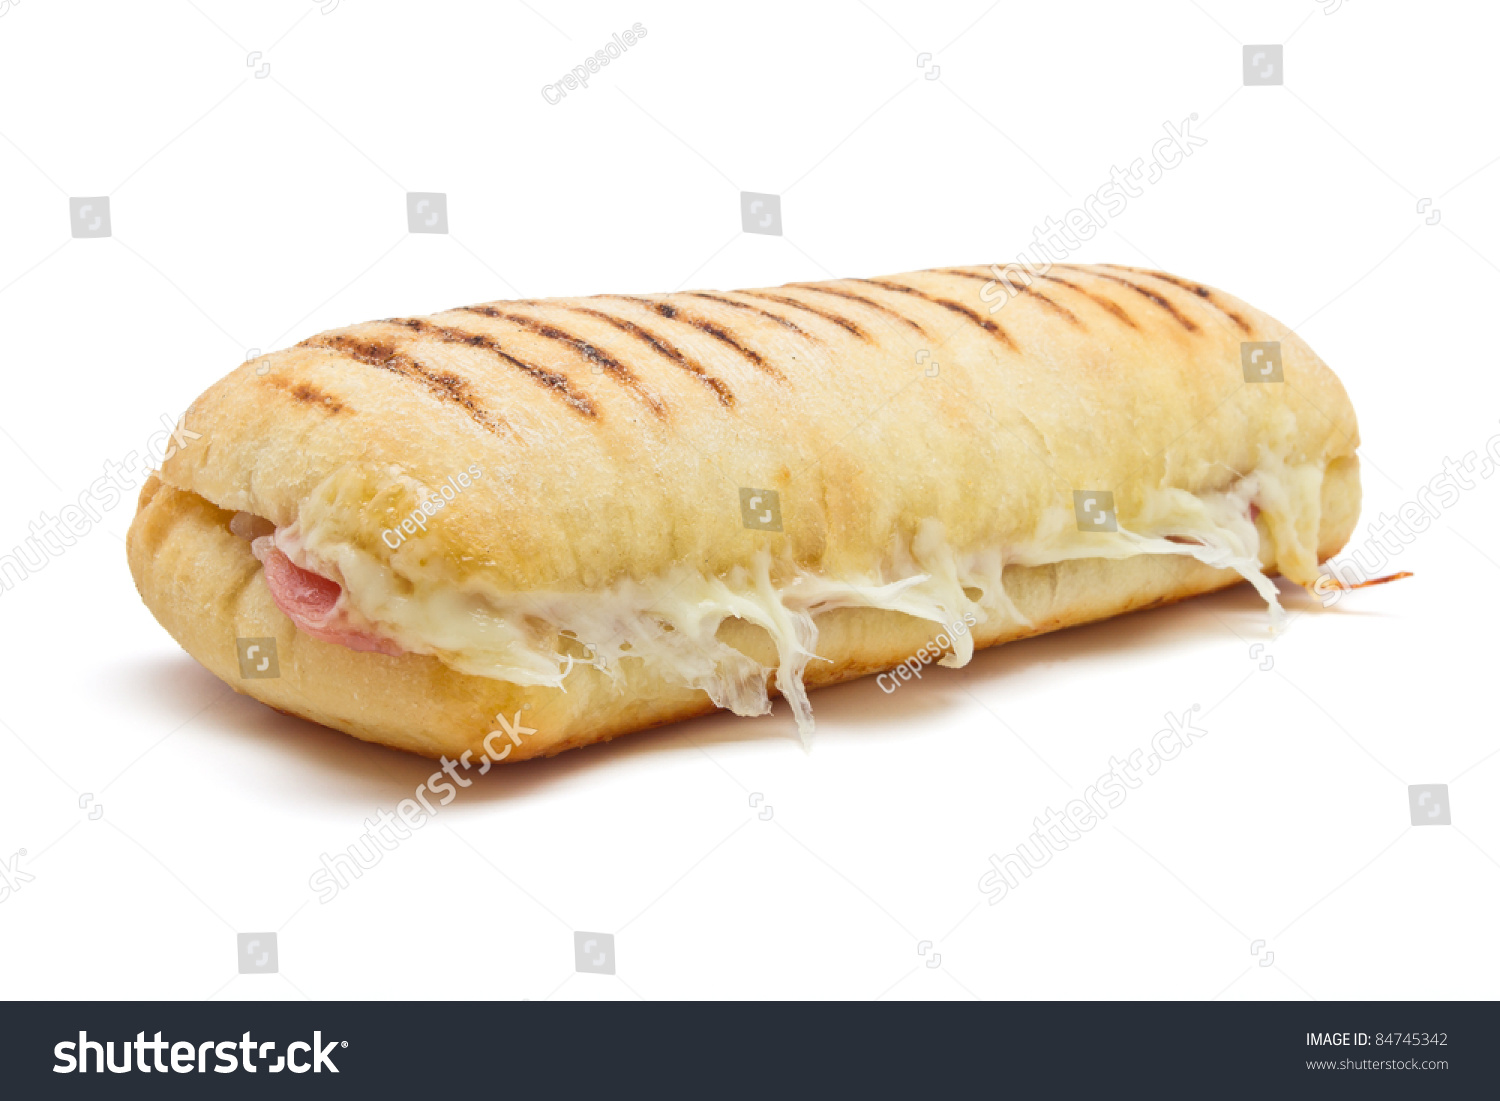 Bacon And Cheese Panini From Low Perspective Isolated On White. Stock ...